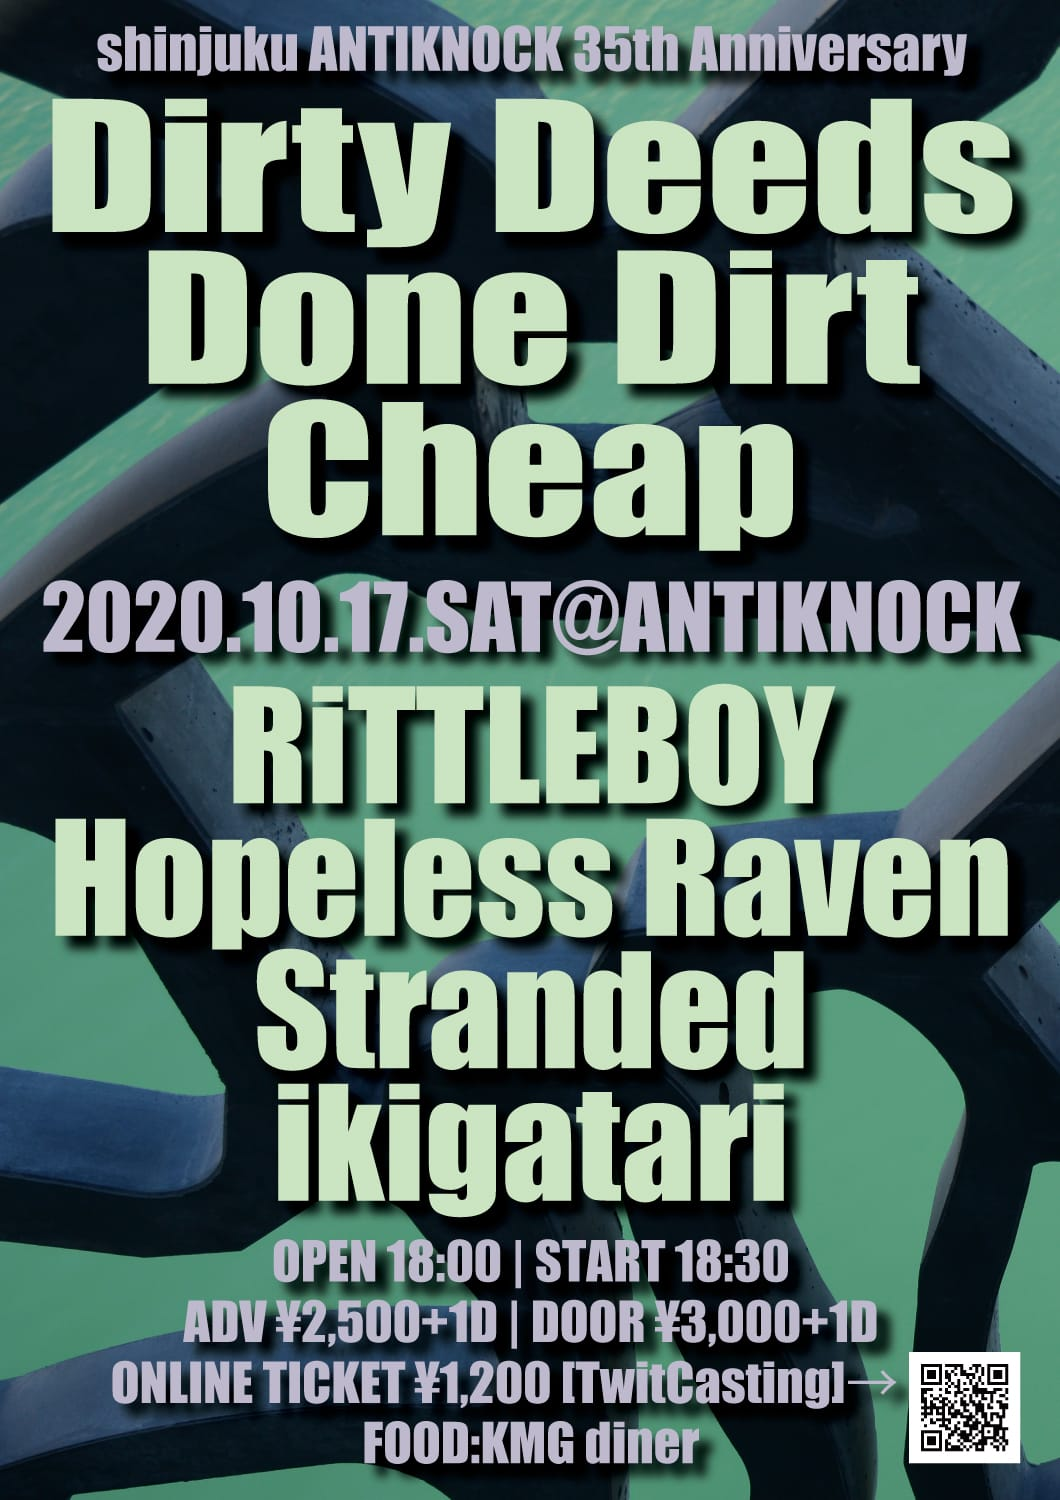 【Dirty Deeds Done Dirt Cheap】